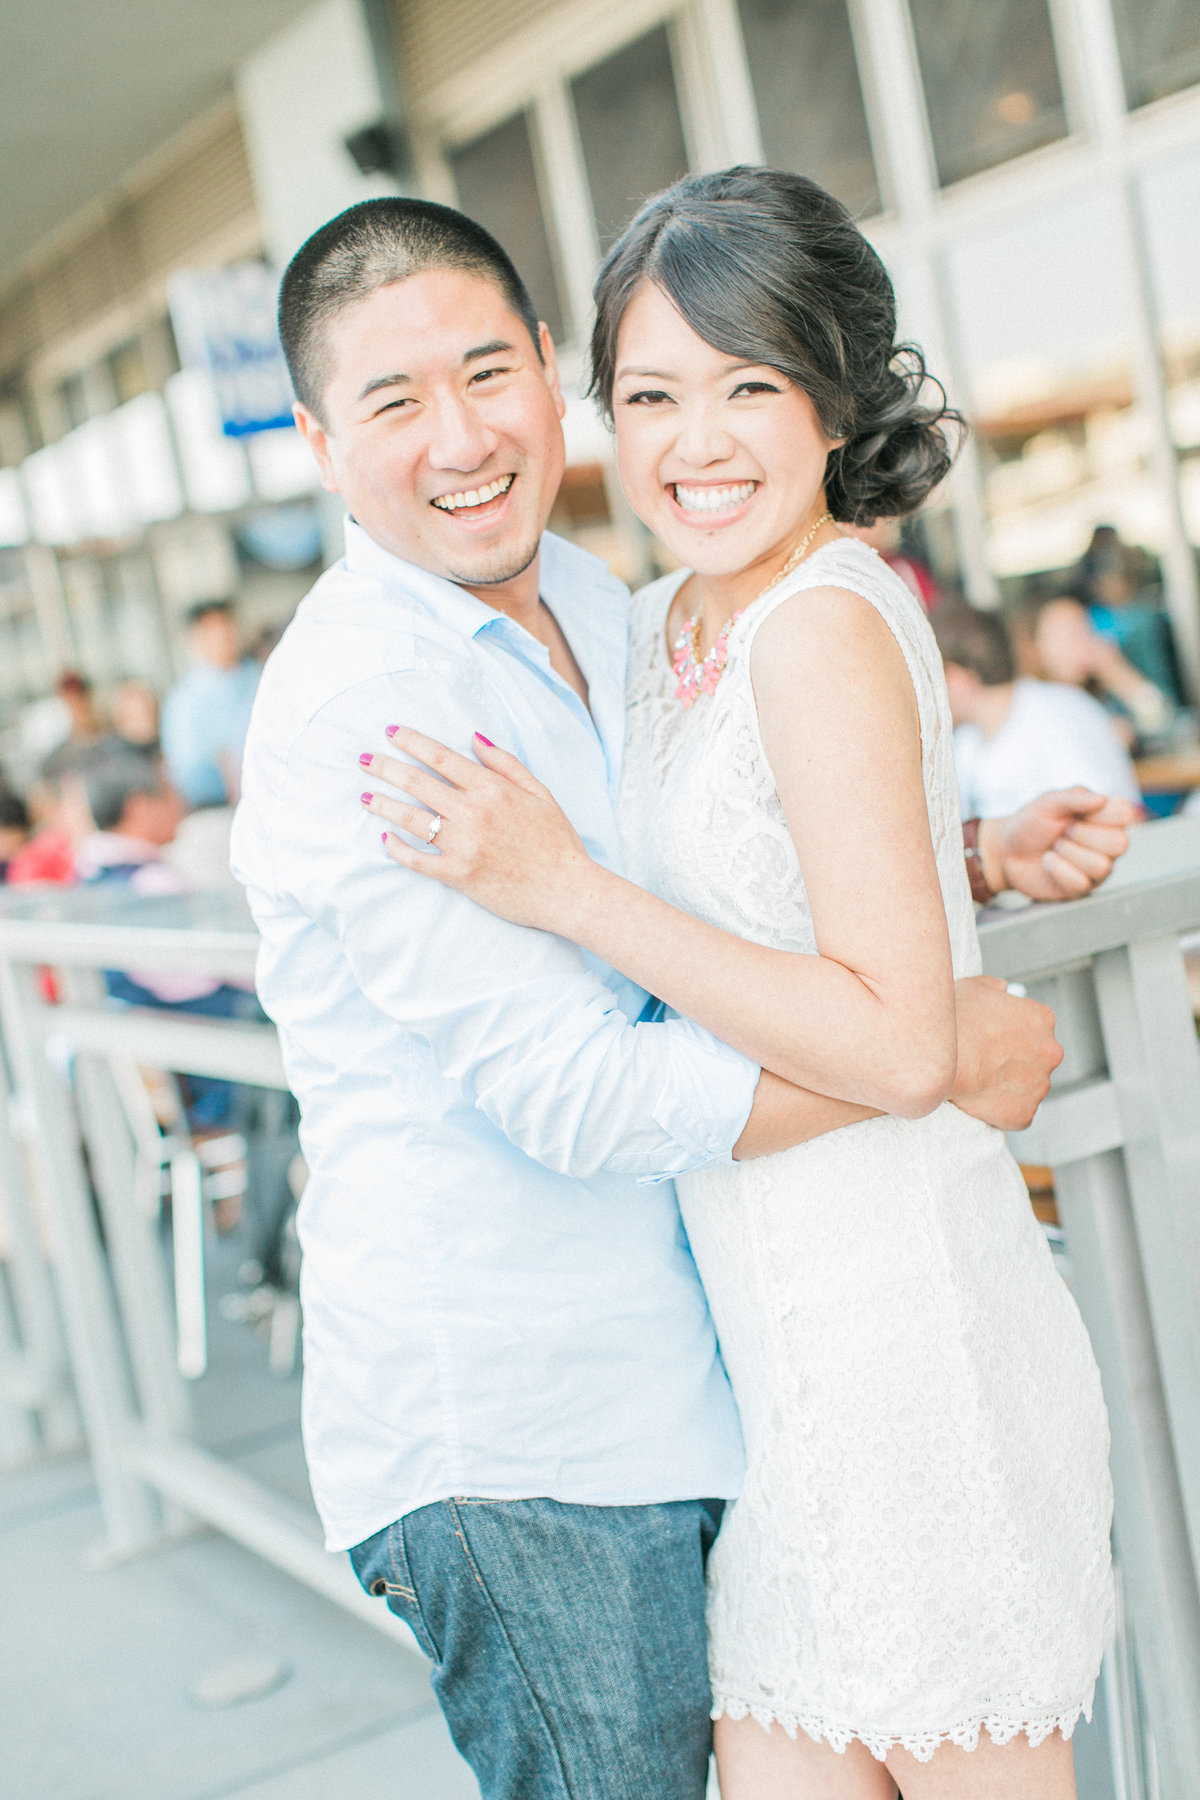 009_justengaged-HogIslandOysterSF-photo